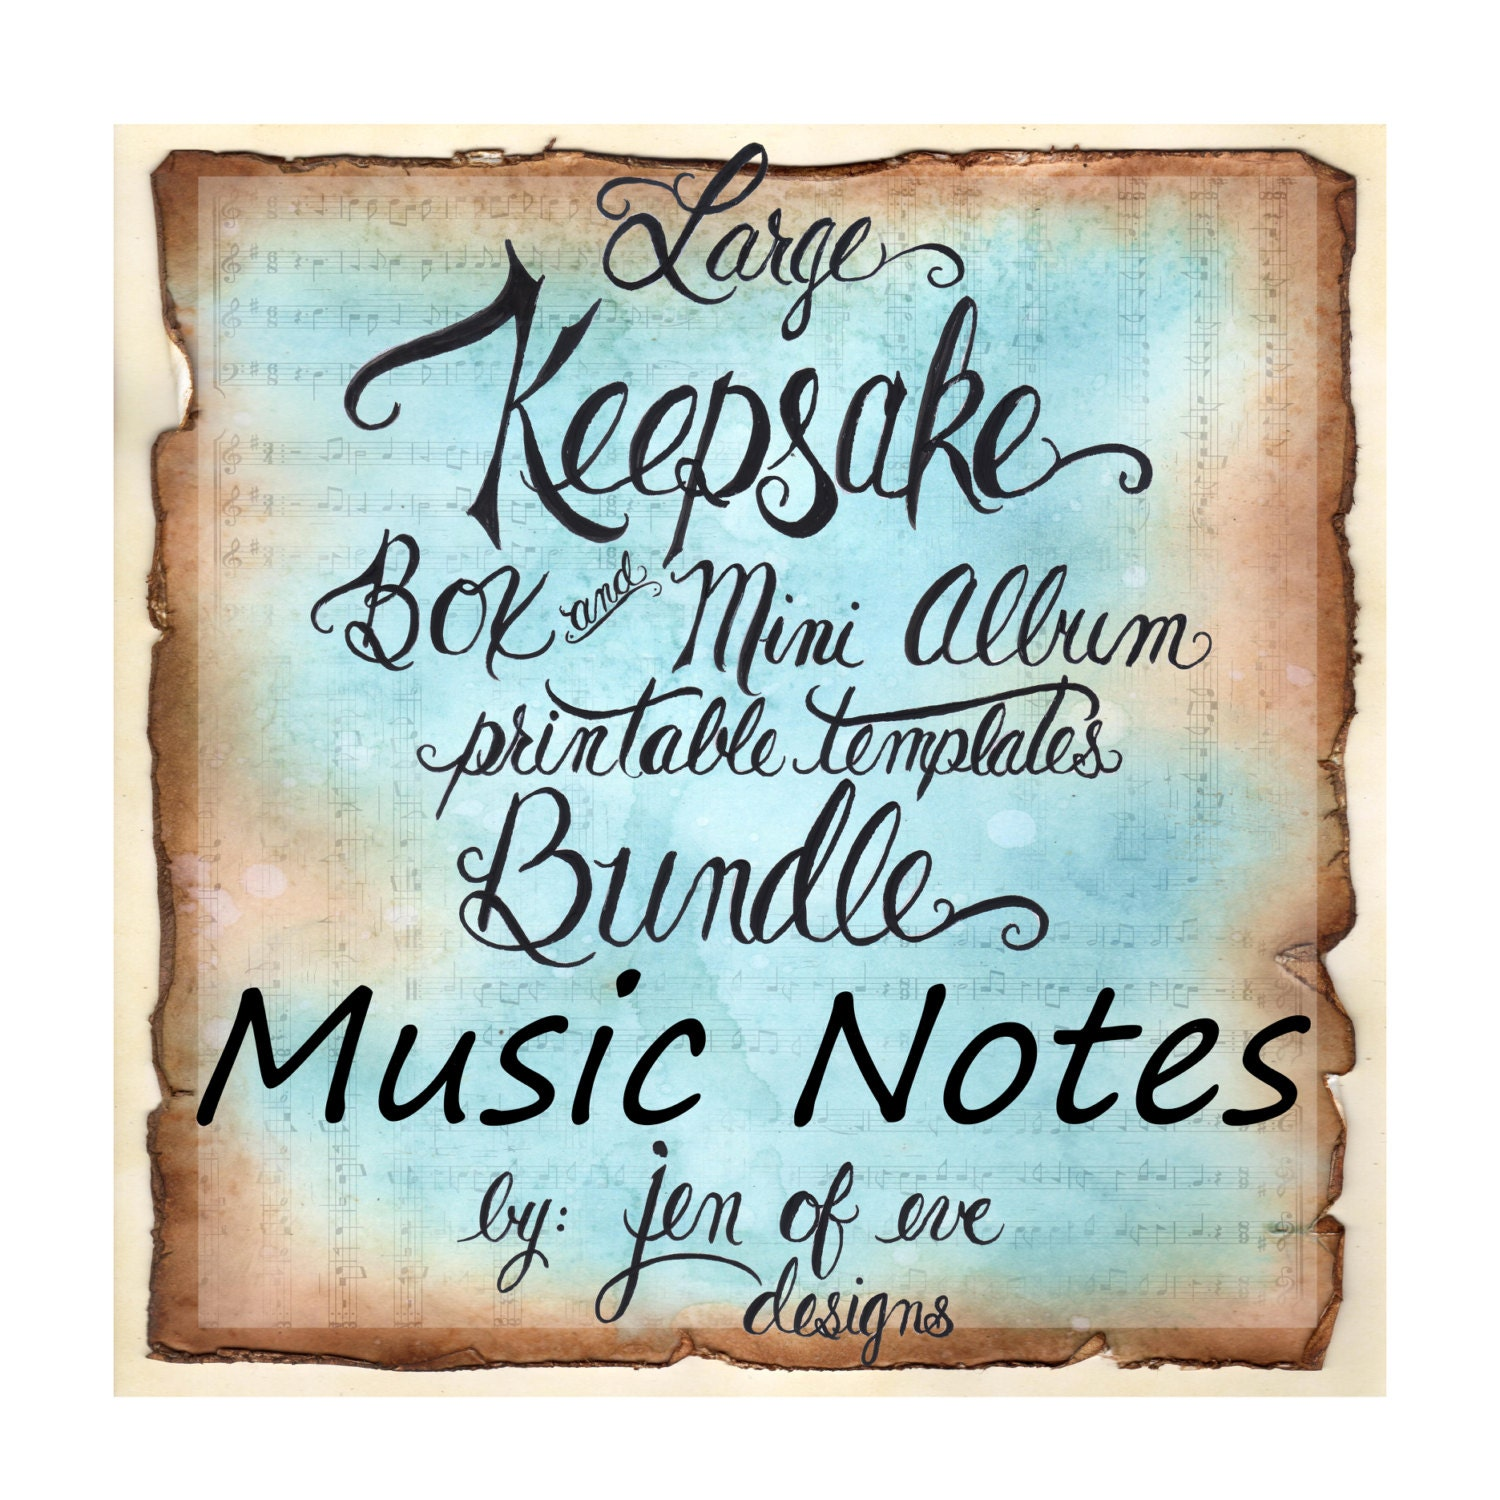 photo about Large Printable Music Notes titled Huge Keepsake Box Mini Al Printable Template in just